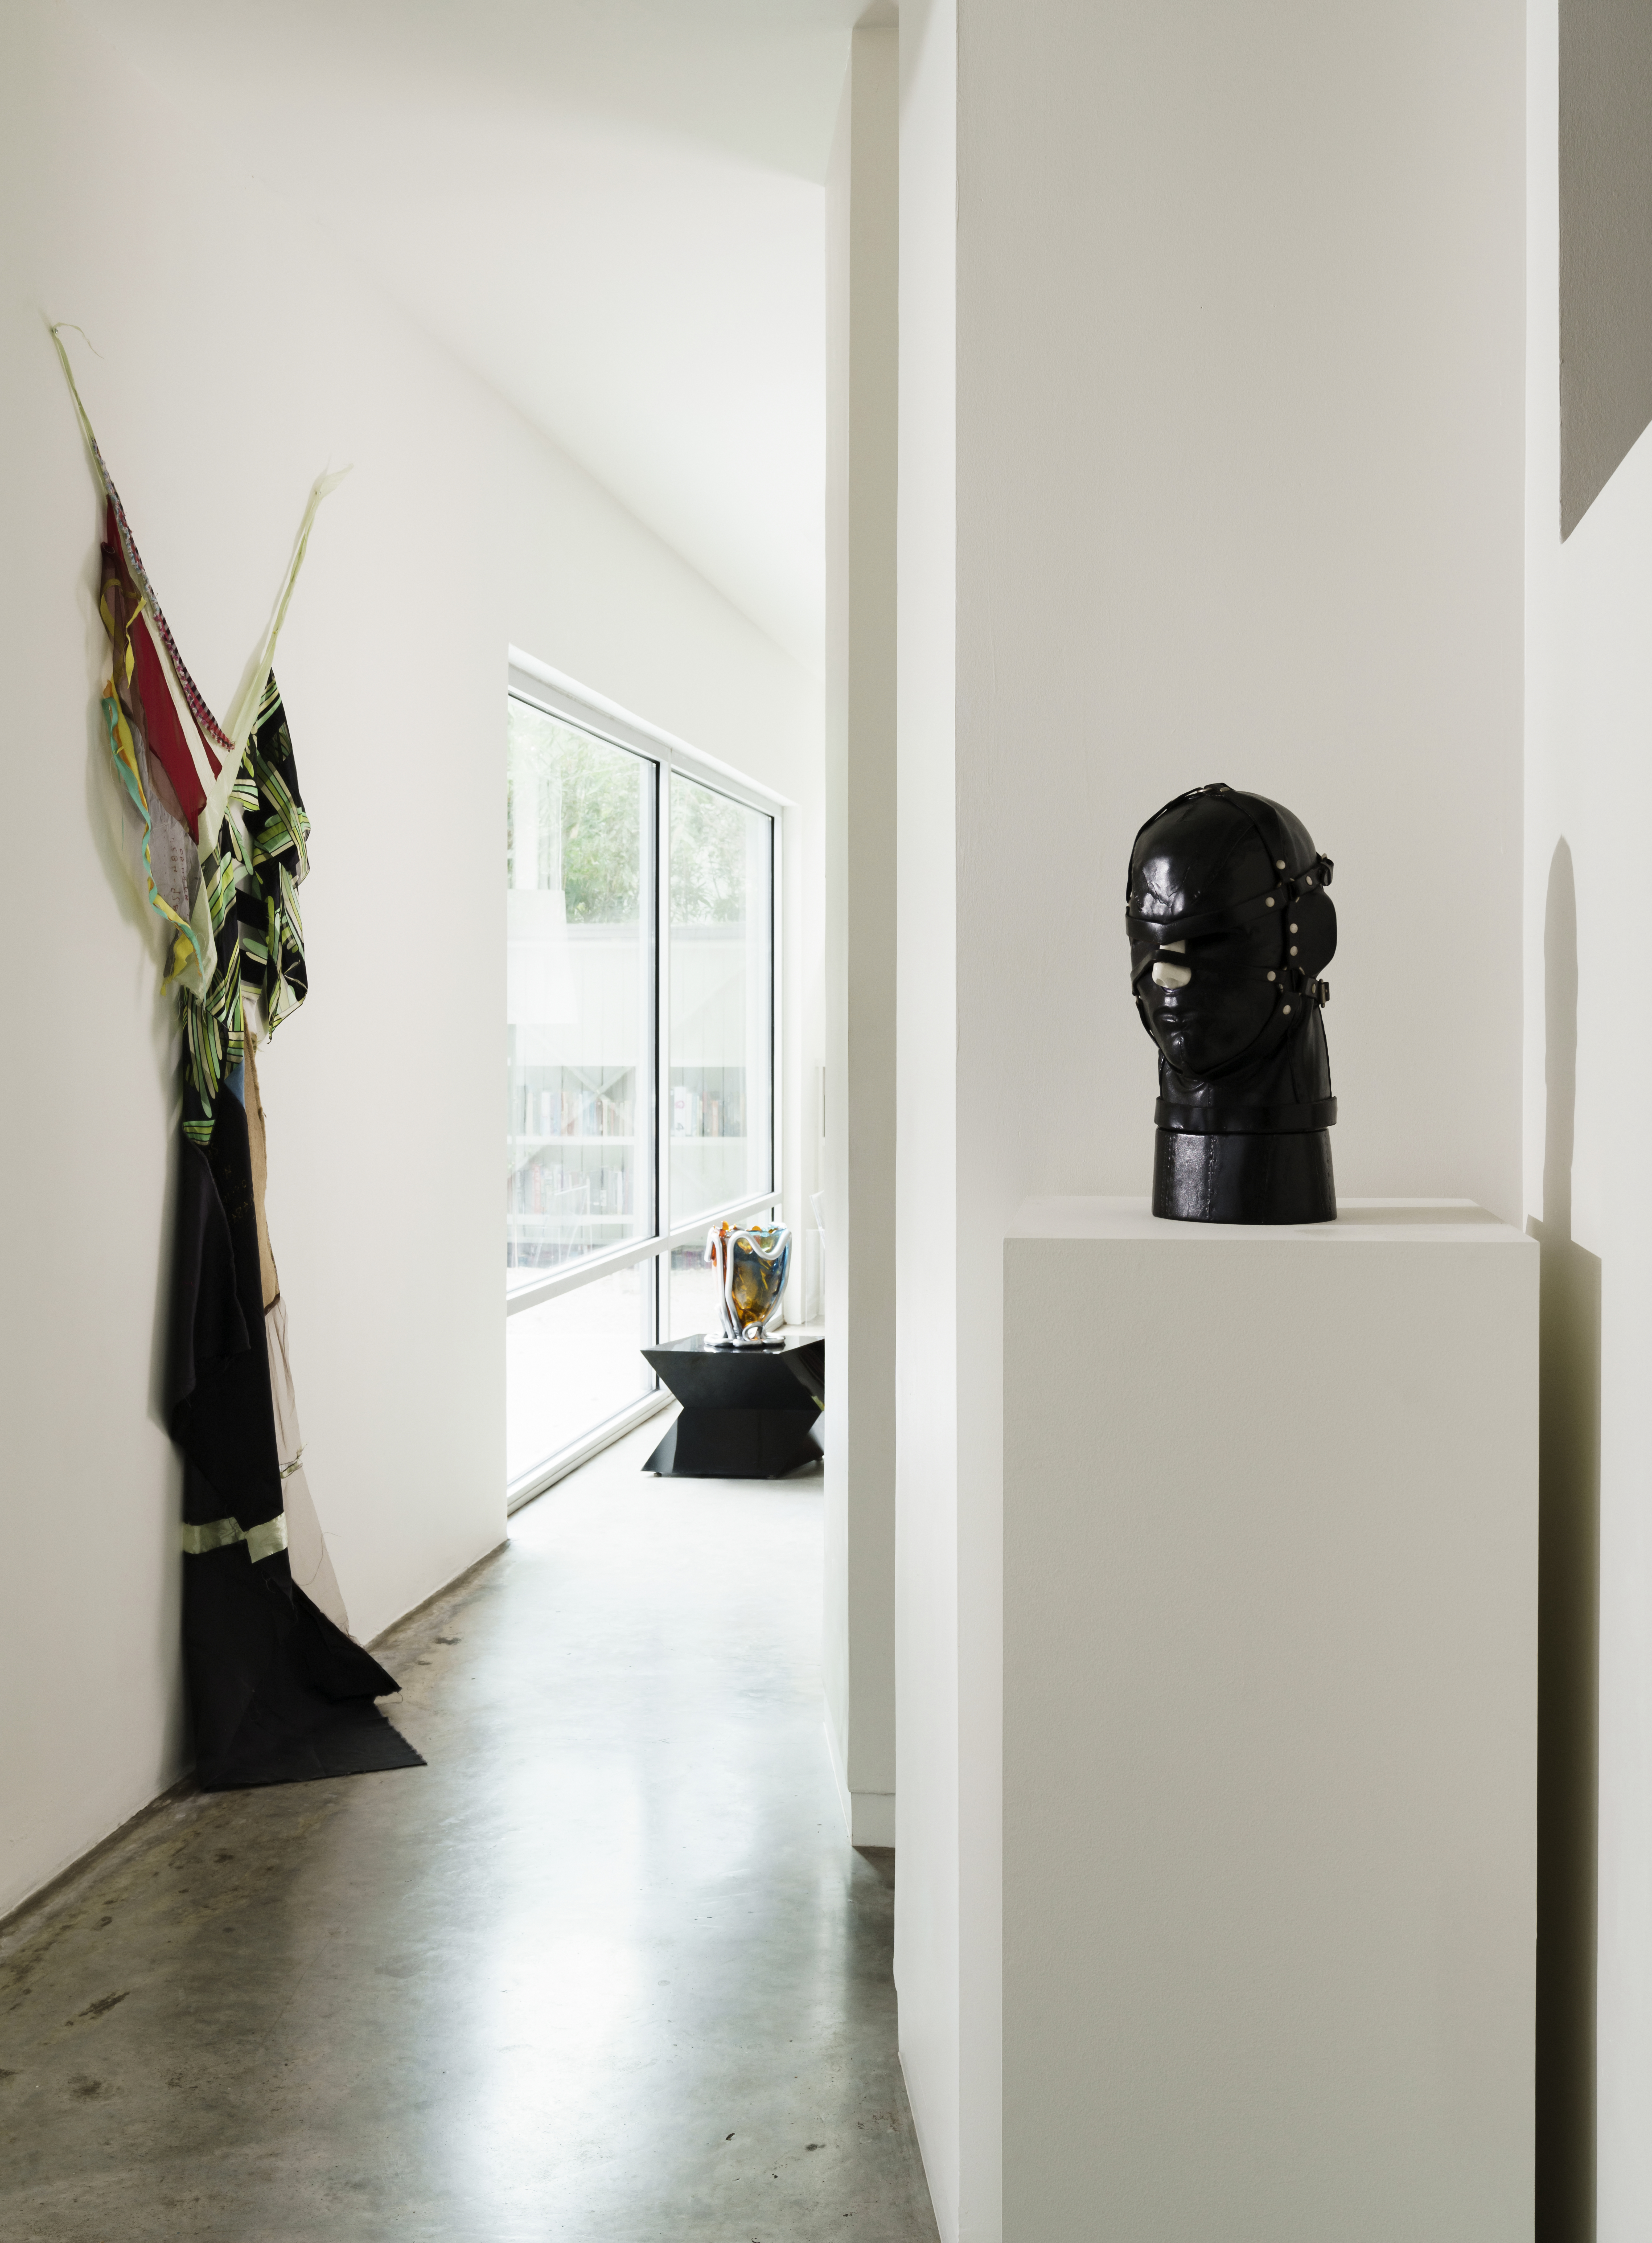 In the hall is a work by Eric N. Mack and to the right is an iconic leather heads by Nancy Grossman.